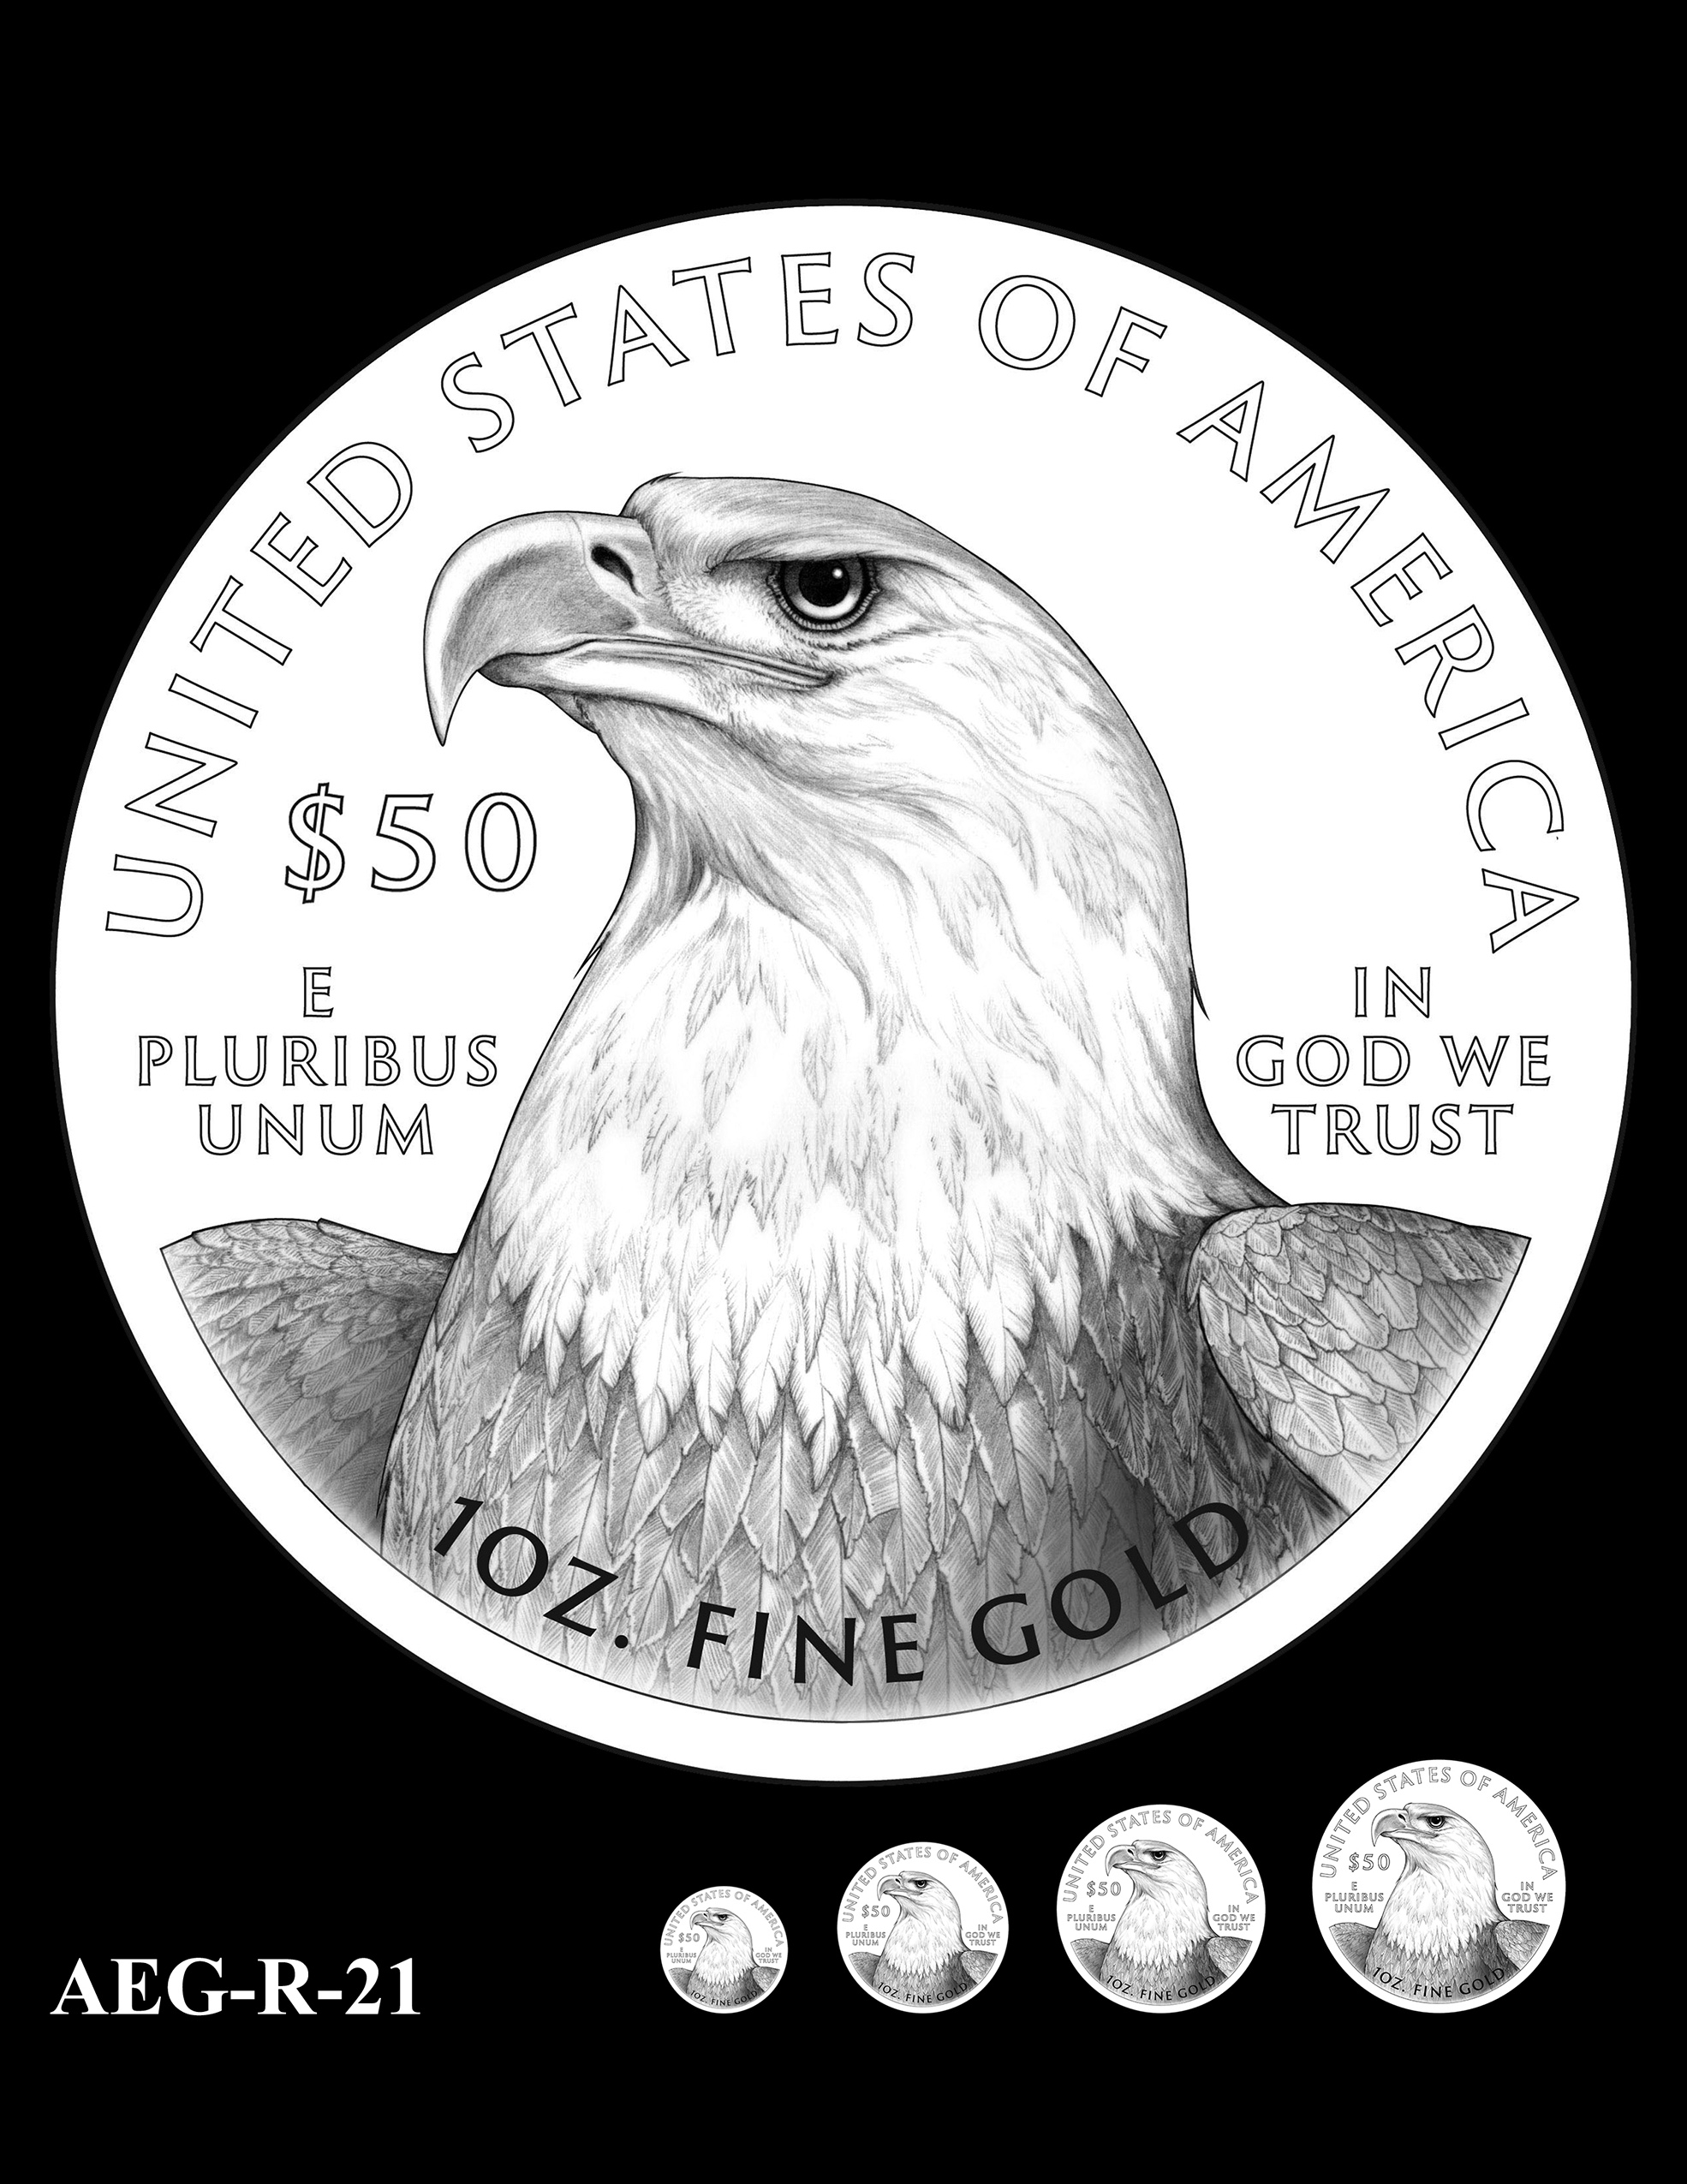 AEG-R-21 -- American Eagle Proof and Bullion Gold Coin - Reverse